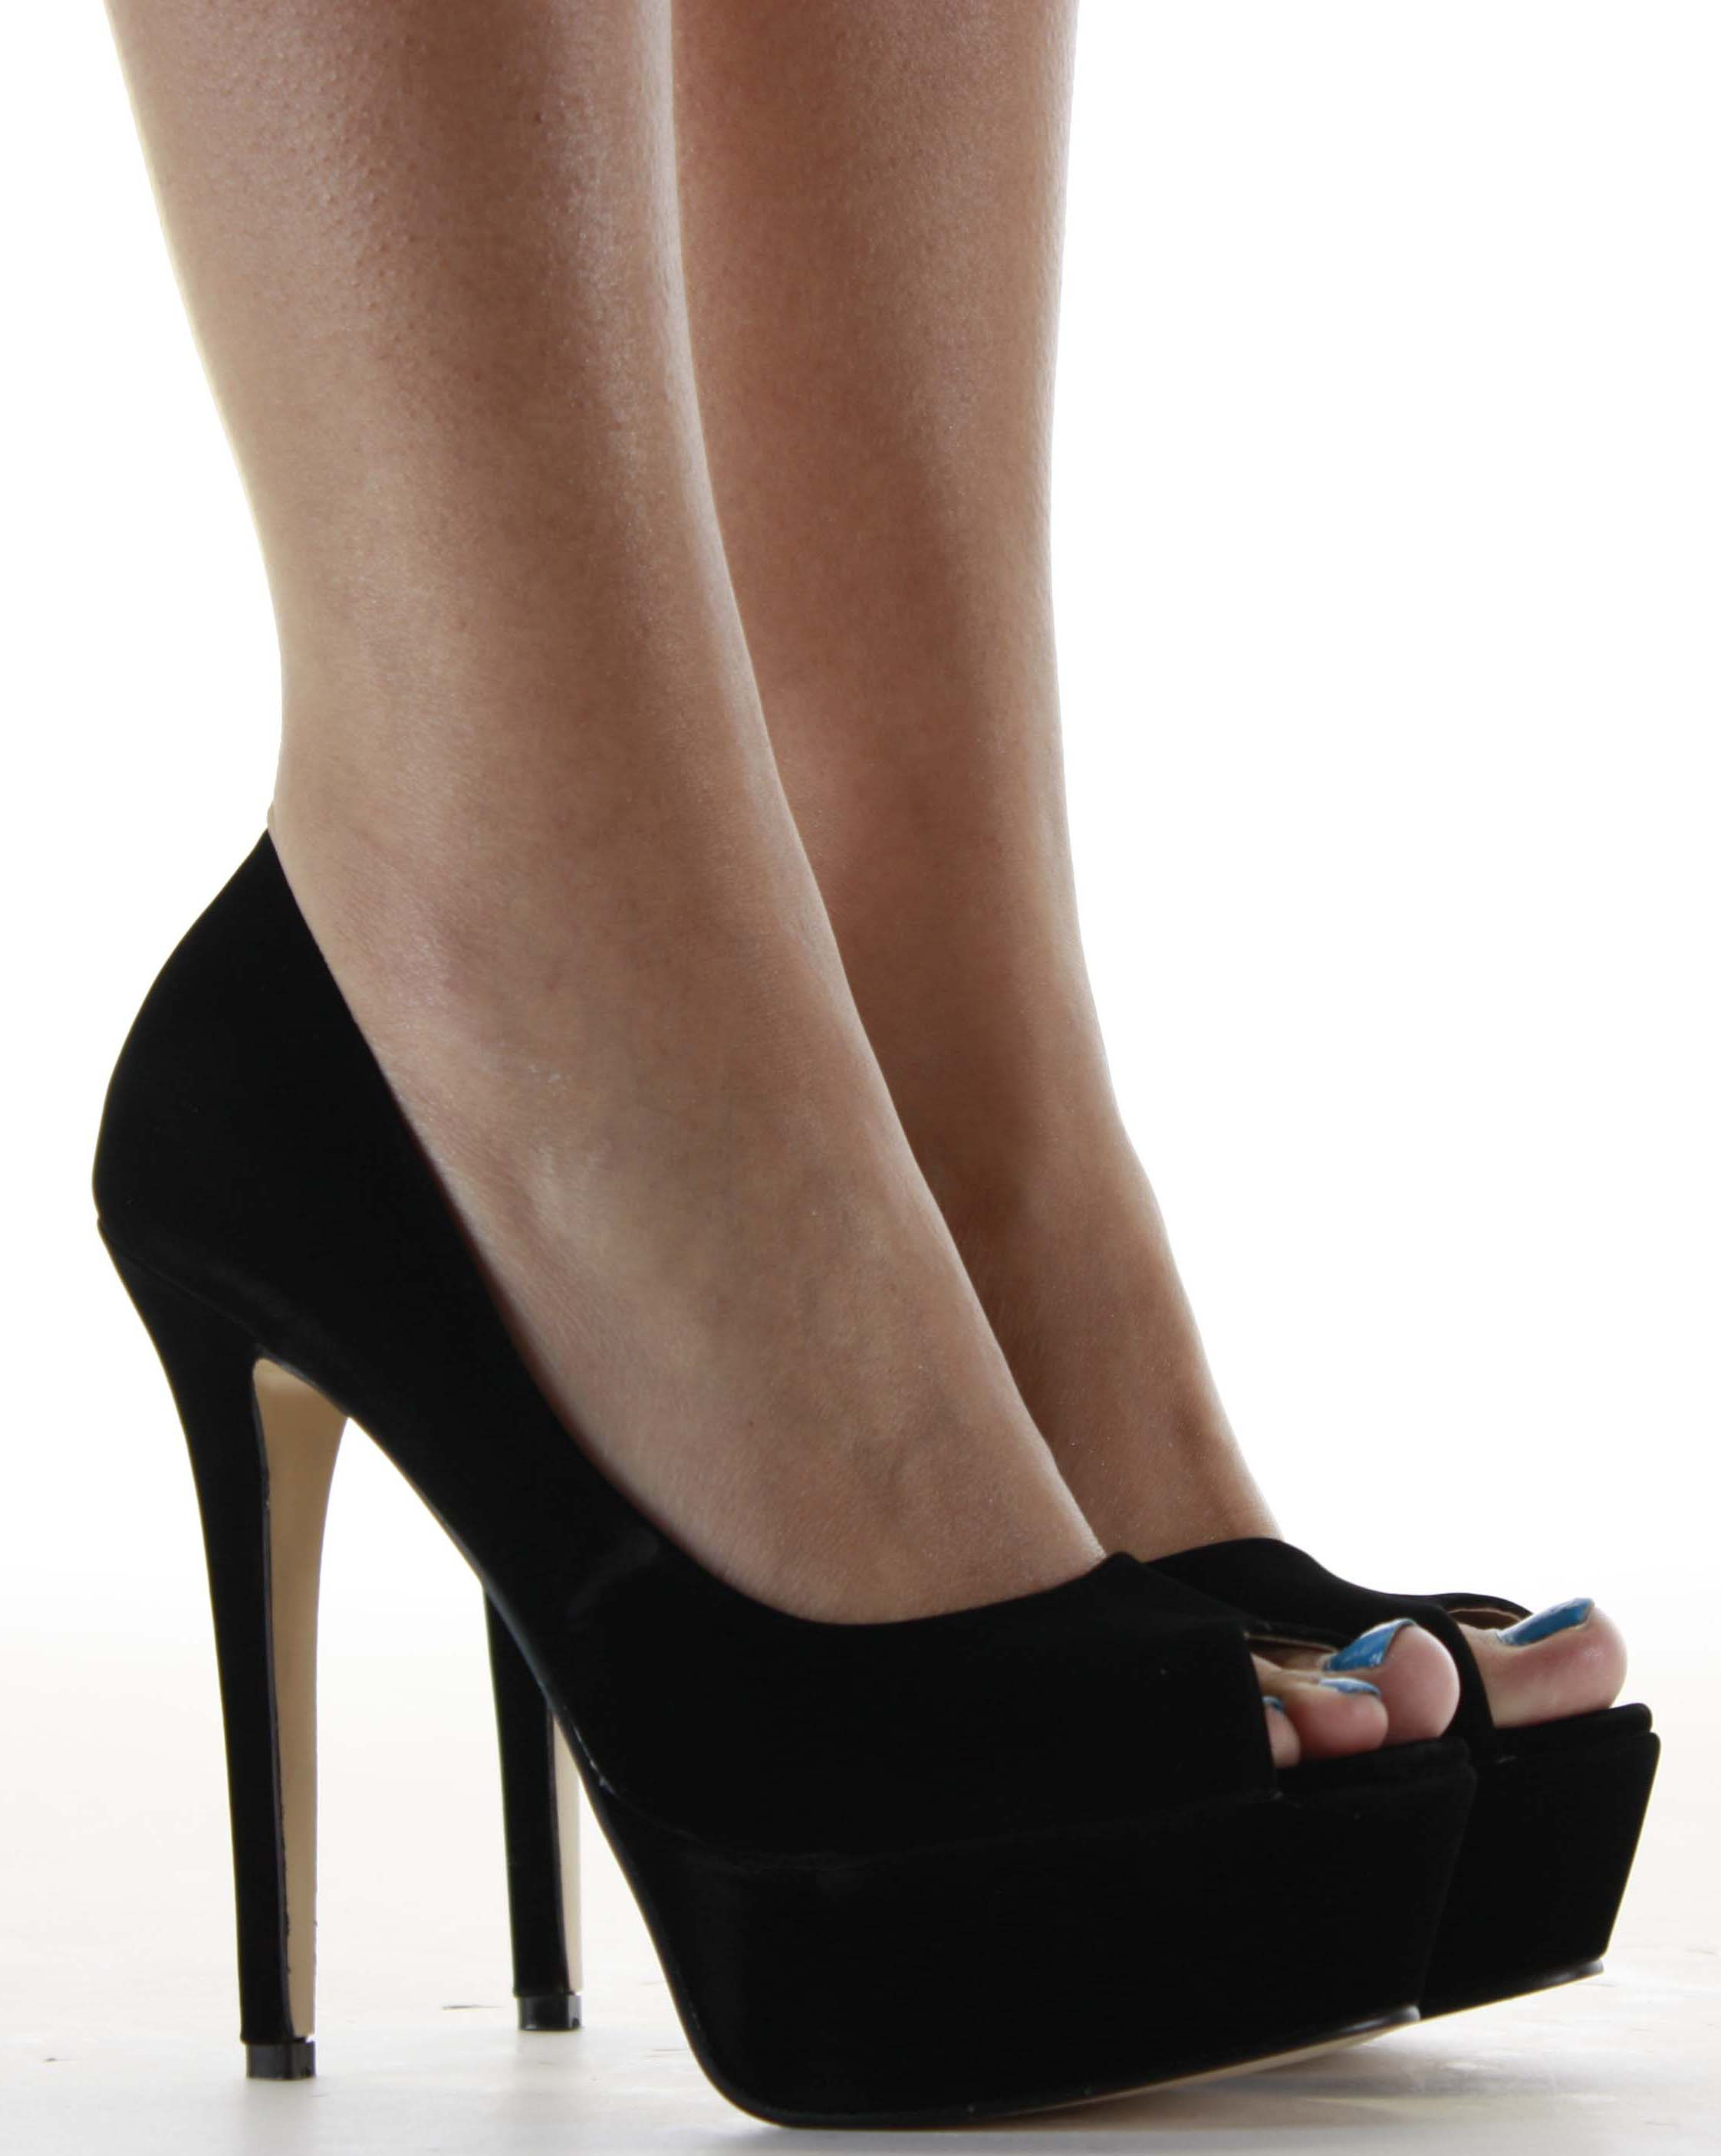 Pump High Heel Shoes 5feT5XQ6